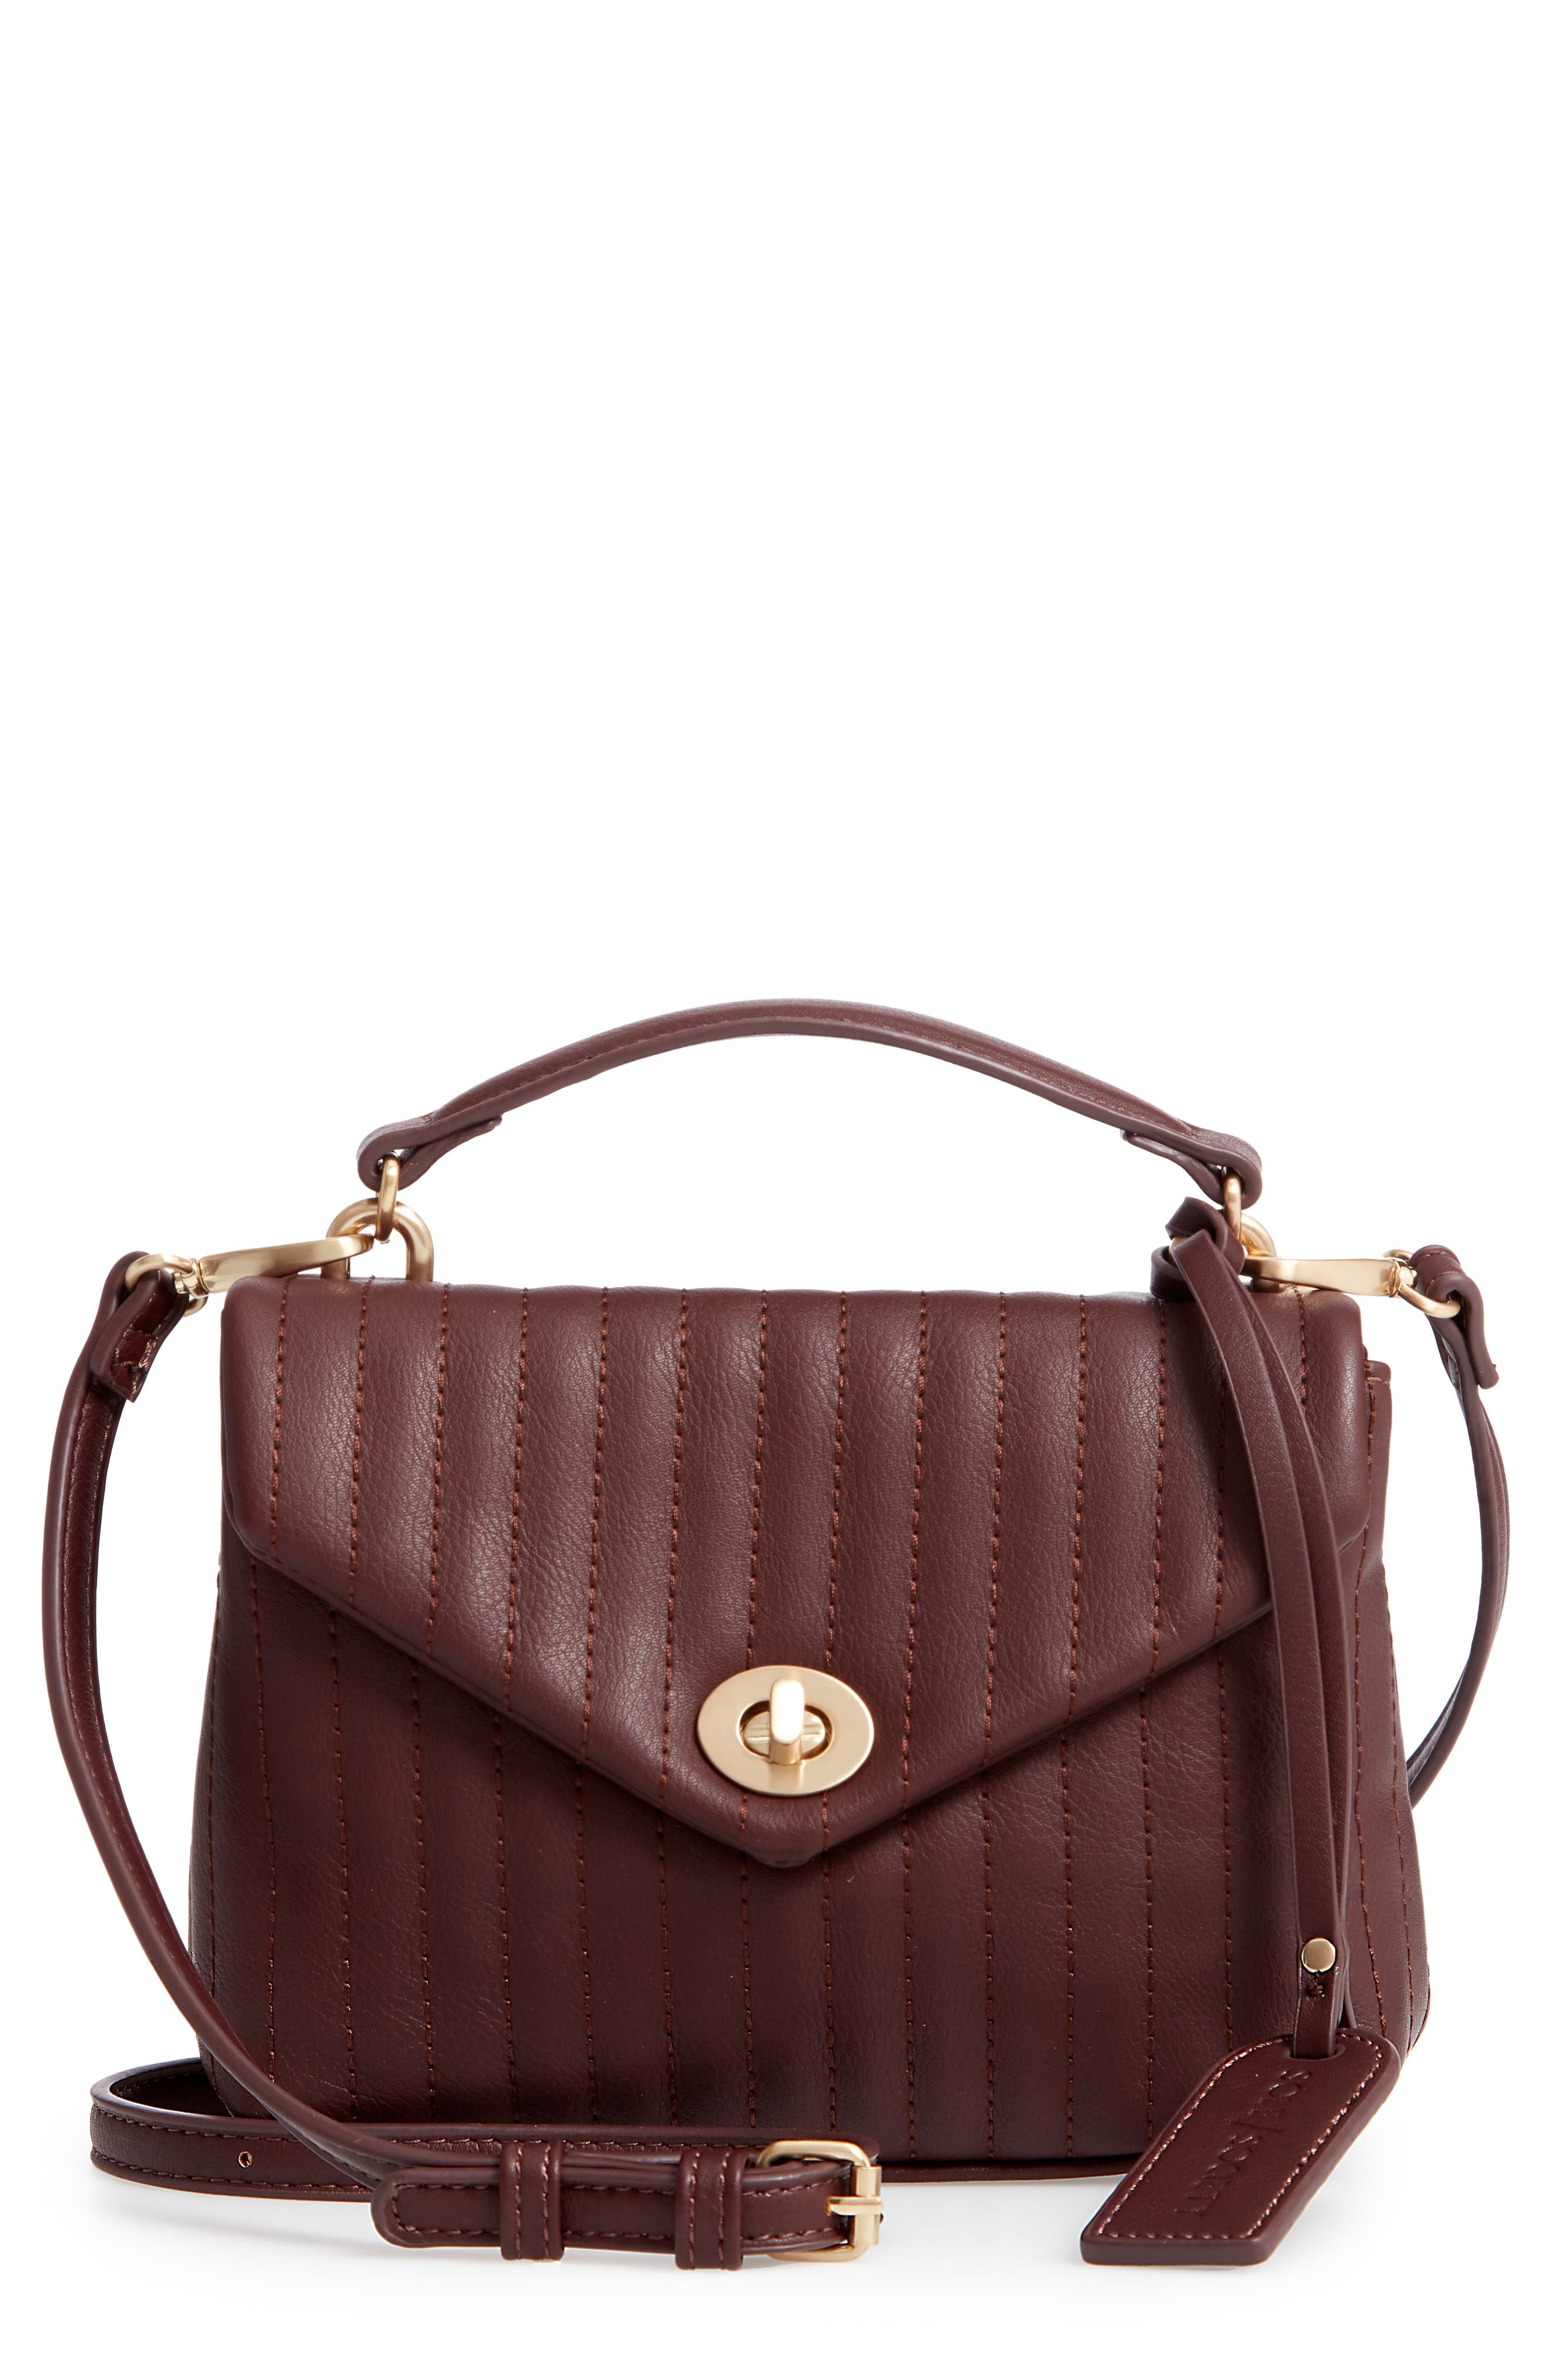 SOLE SOCIETY, Urche Faux Leather Crossbody Bag, Main thumbnail 1, color, OXBLOOD